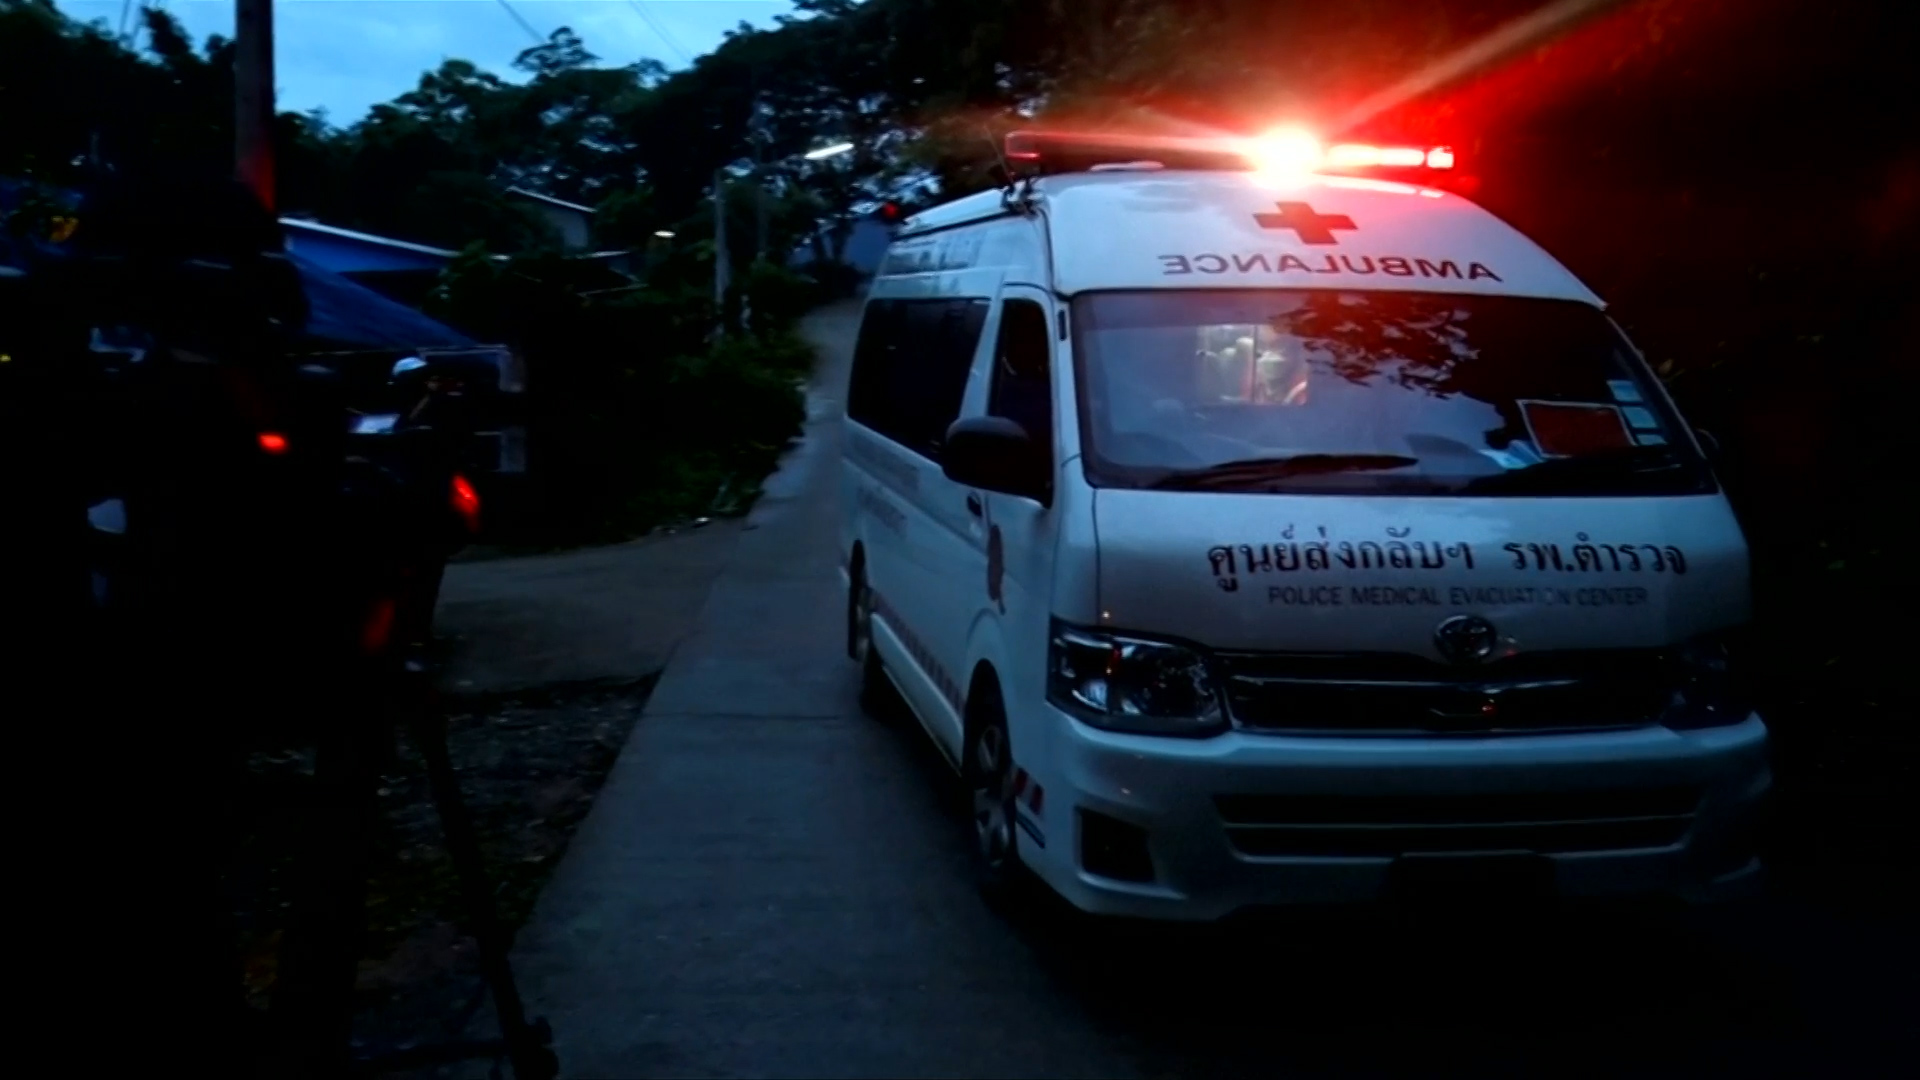 Thailand Cave Rescue Latest: More Schoolboys Are Saved